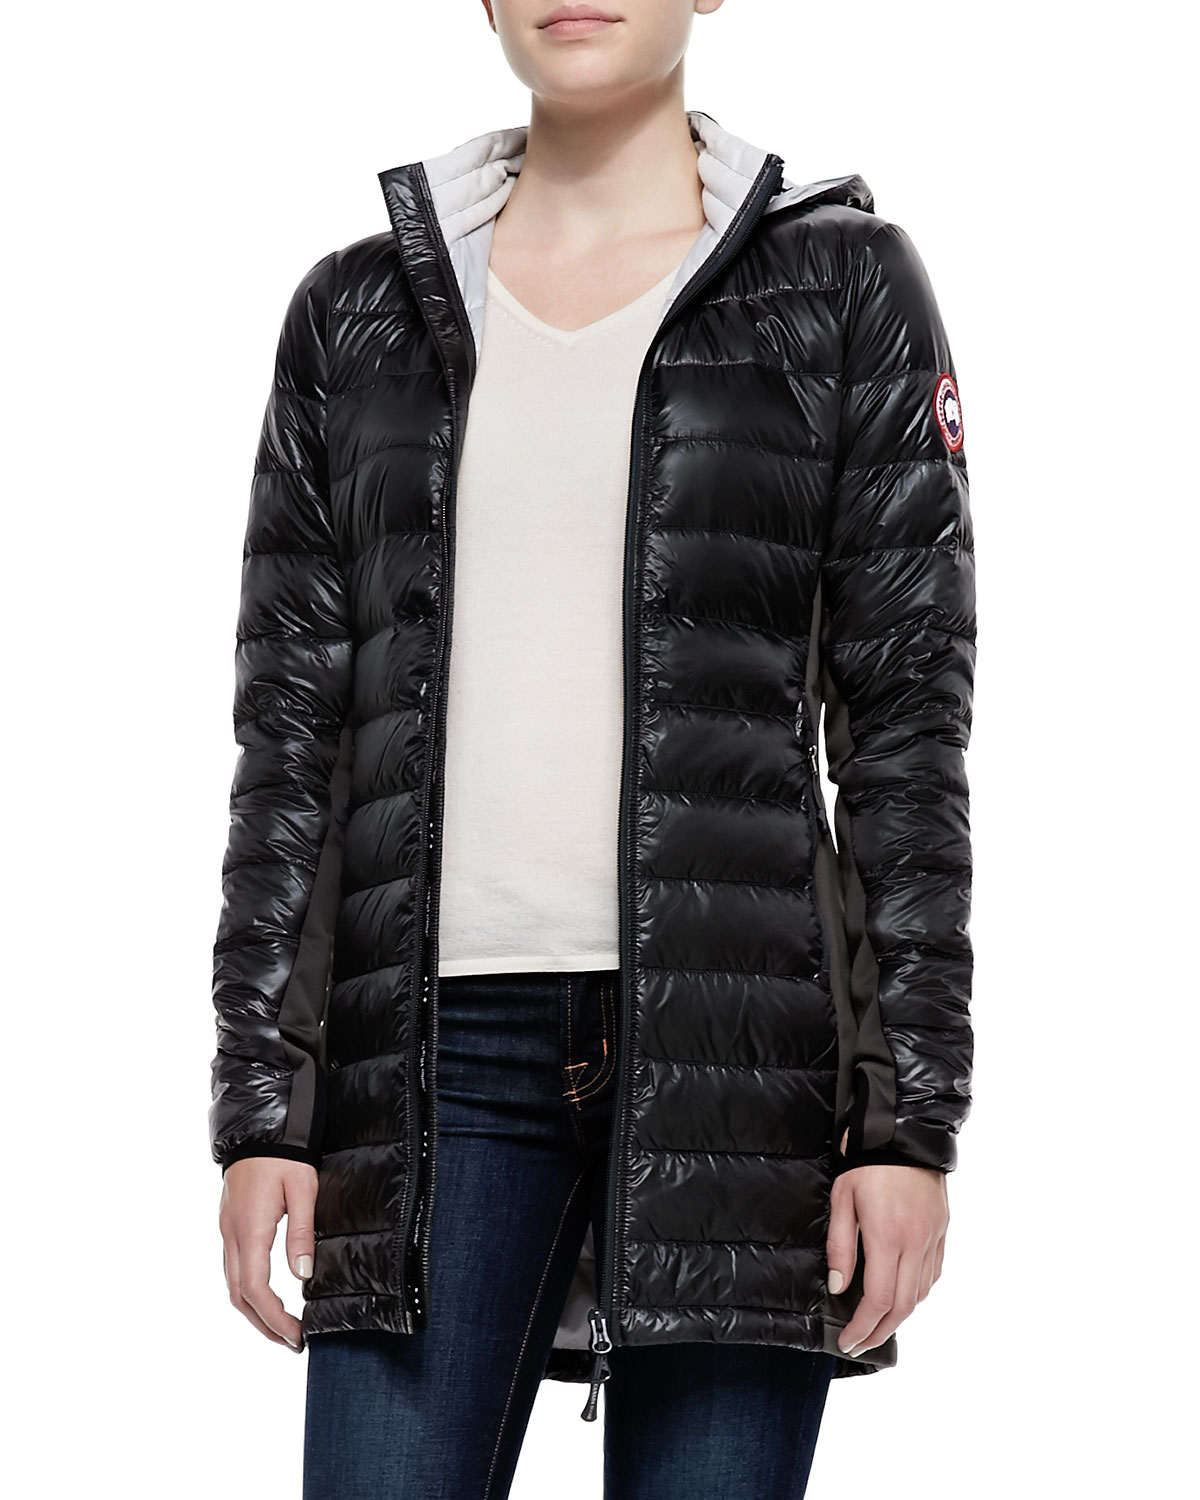 Hybridge Lite Puffer Jacket, Graphite/Red | *Neiman Marcus* | Pinterest | Puffer jackets, Canada goose and Neiman marcus